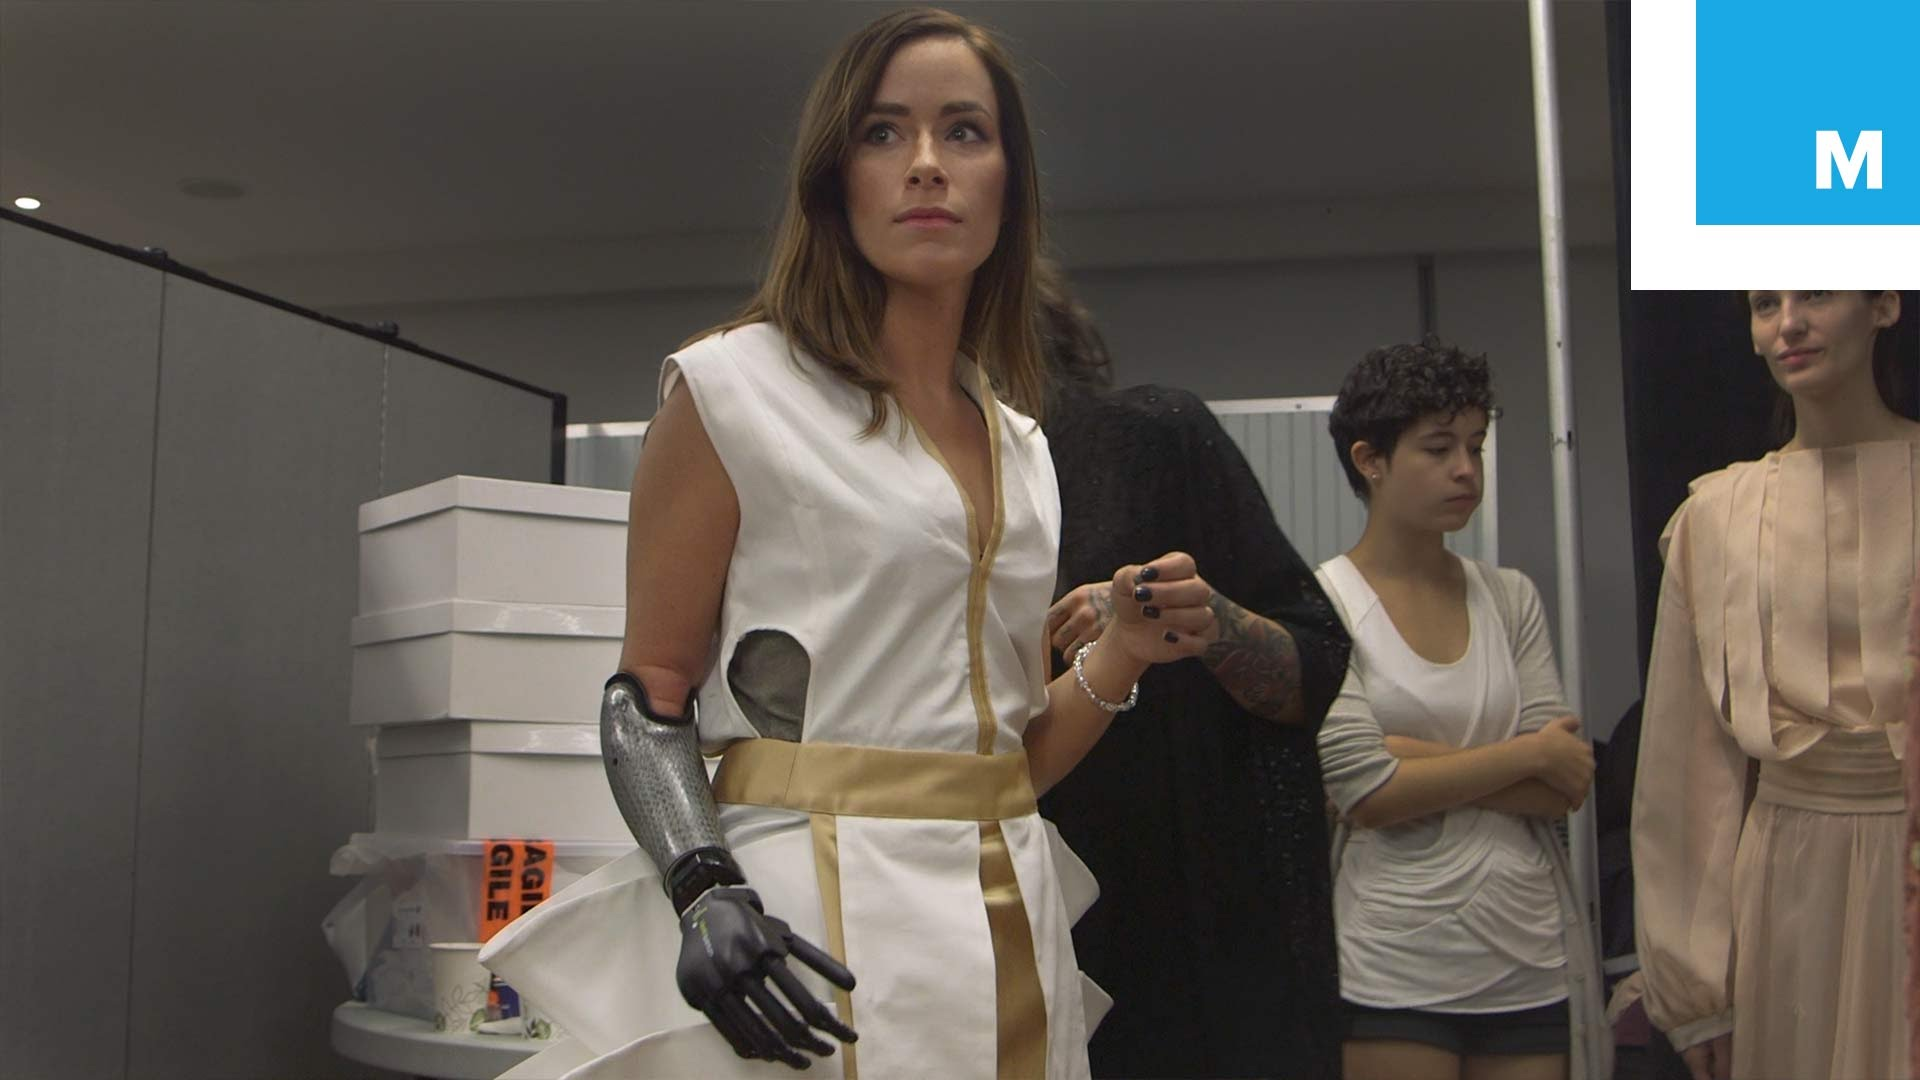 The Runway Model with Advanced Prosthetic Limb